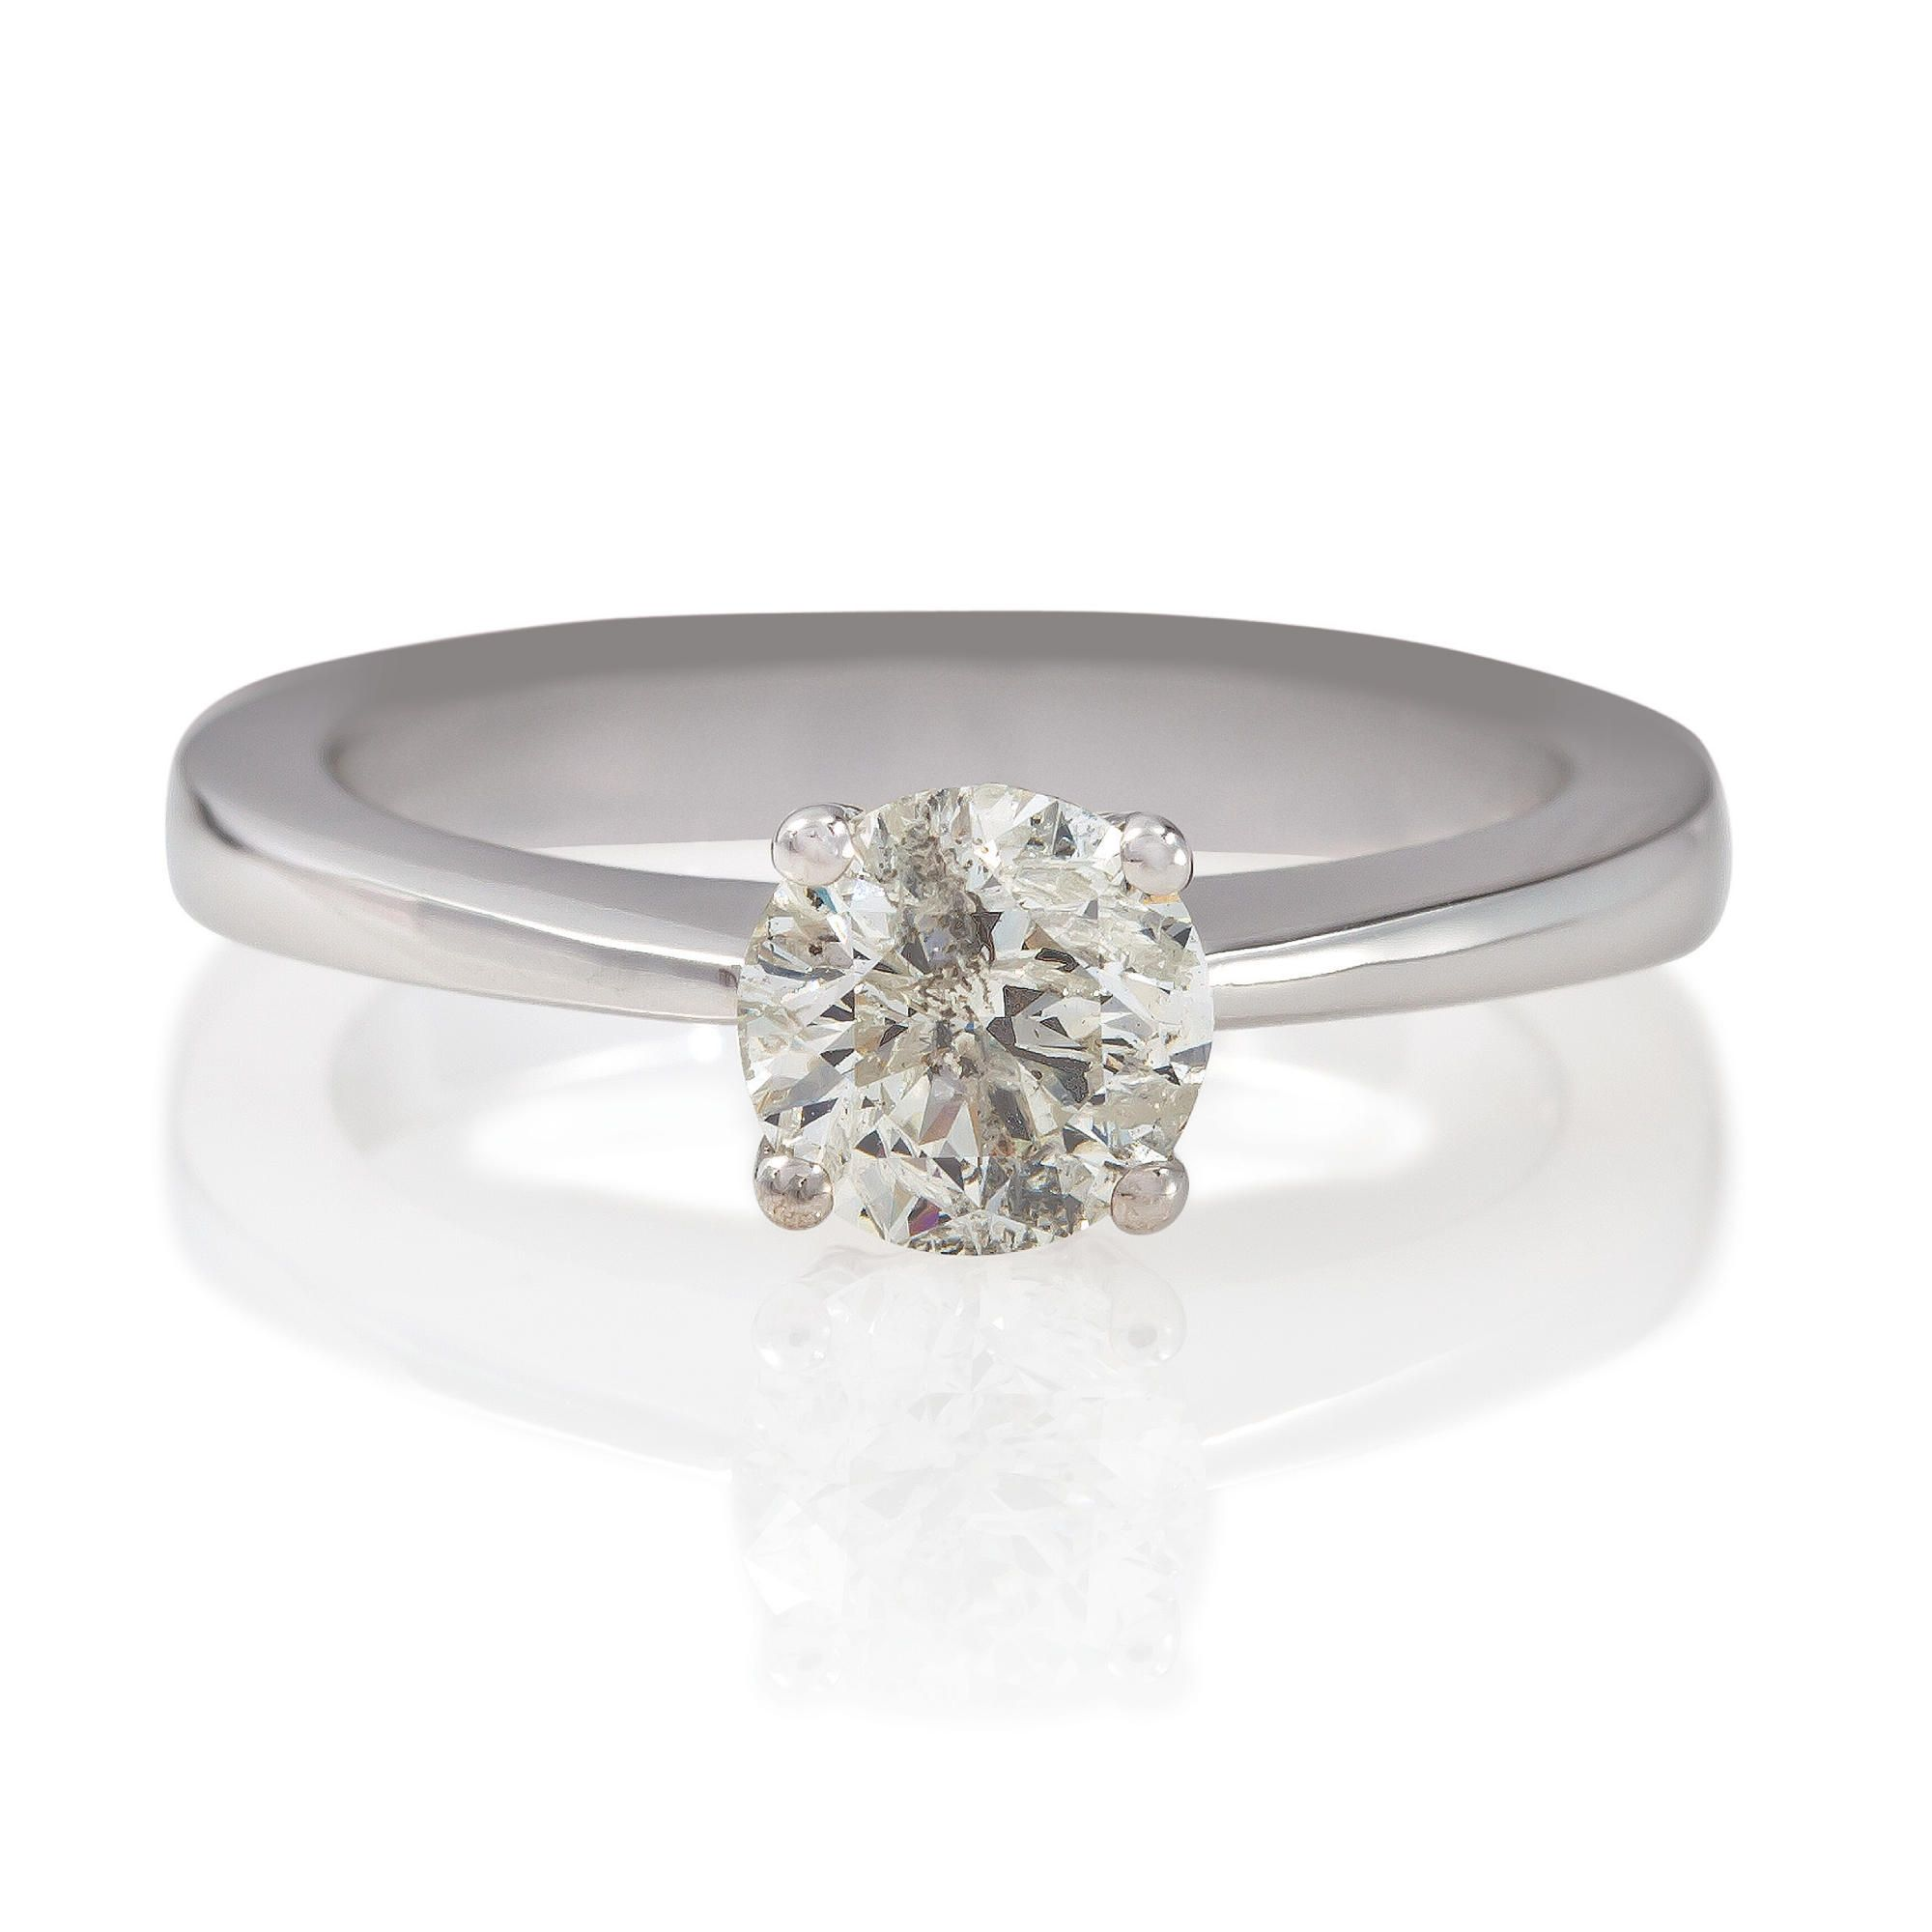 18ct White Gold 1ct Diamond Solitaire Ring, N at Tesco Direct